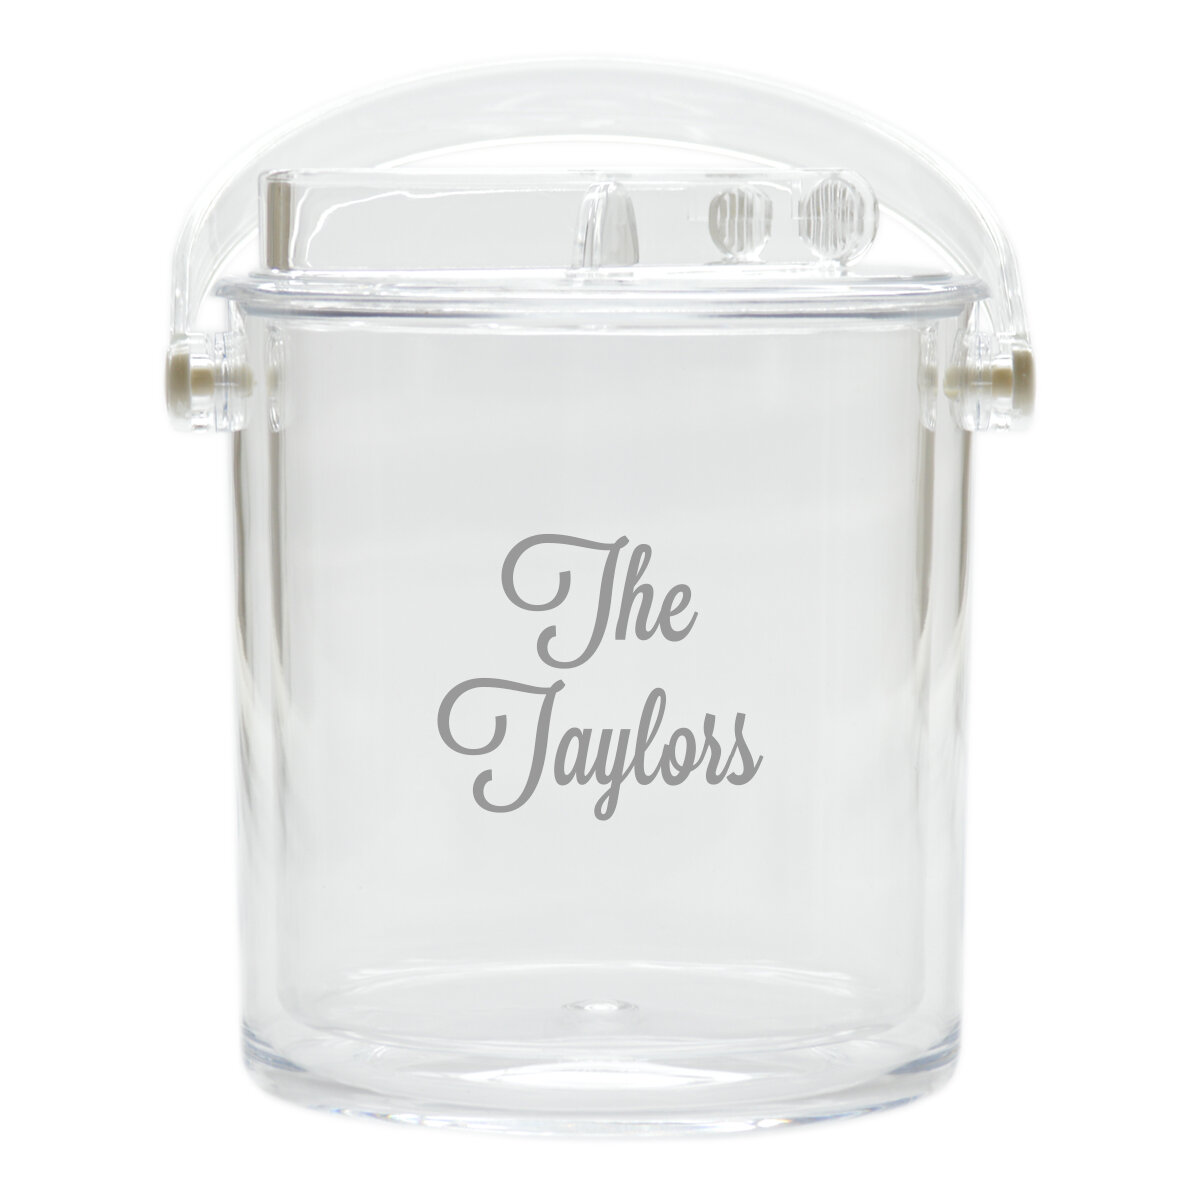 Carved Solutions Personalized Insulated Acrylic Ice Bucket With Tongs Reviews Wayfair